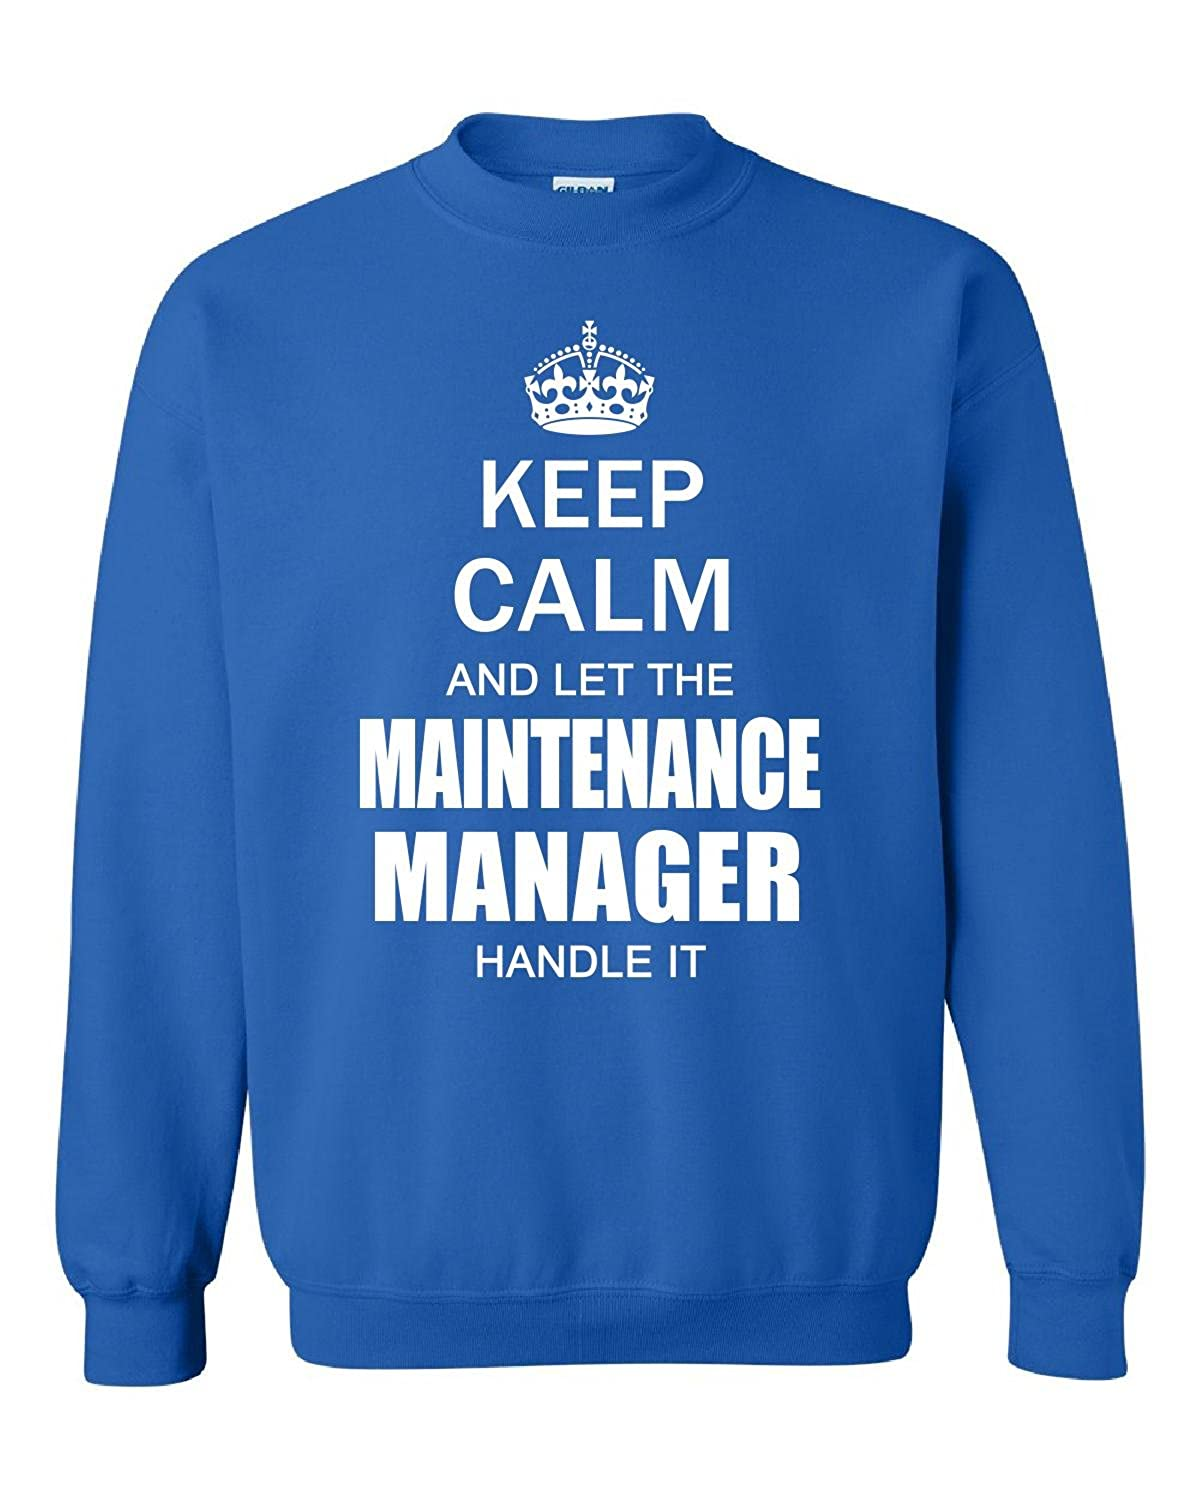 c6989ab607 Shirt Luv Keep Calm and Let The Maintenance Manager Handle It Funny - Adult  Sweatshirt at Amazon Men's Clothing store: